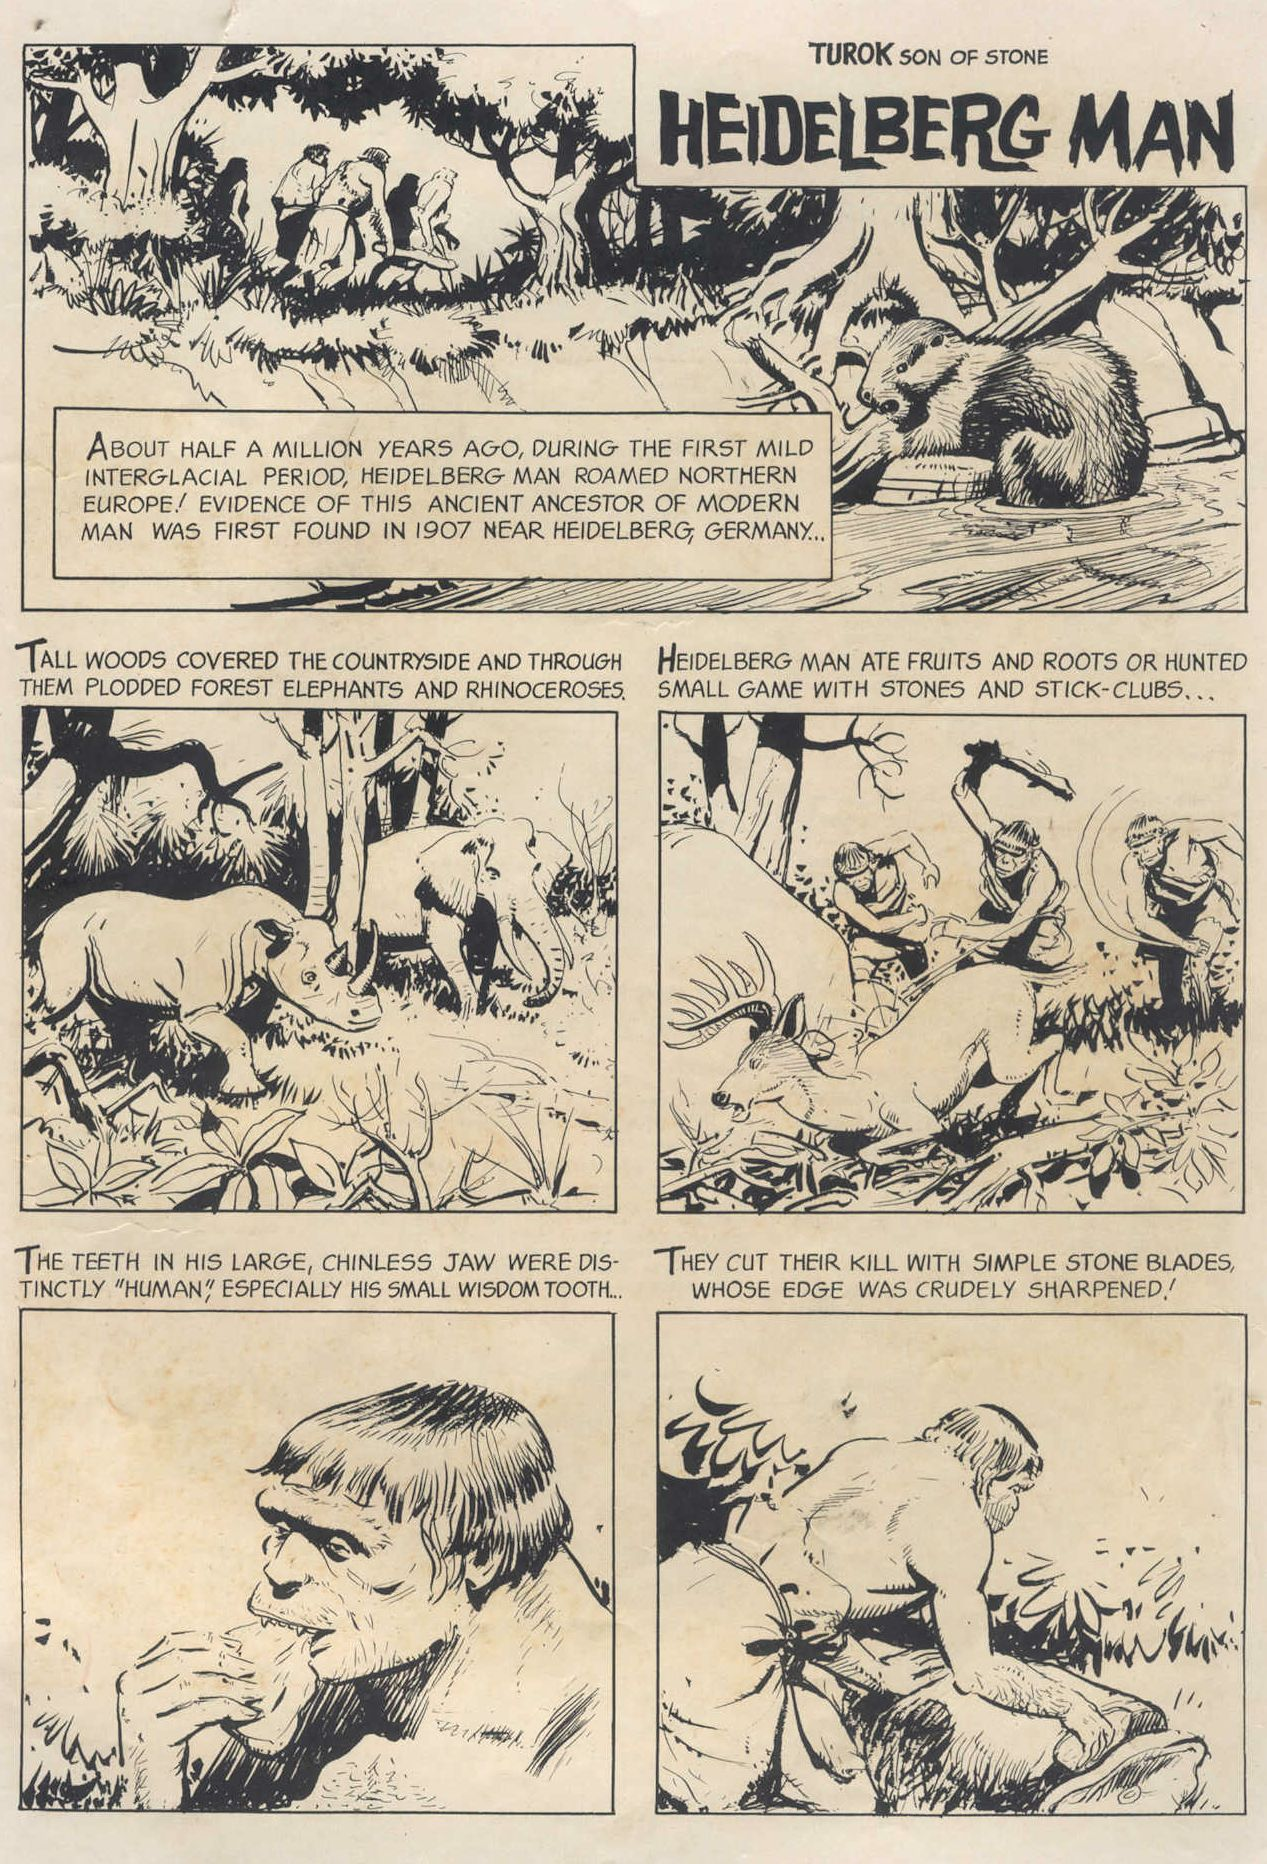 Read online Turok, Son of Stone comic -  Issue #58 - 35